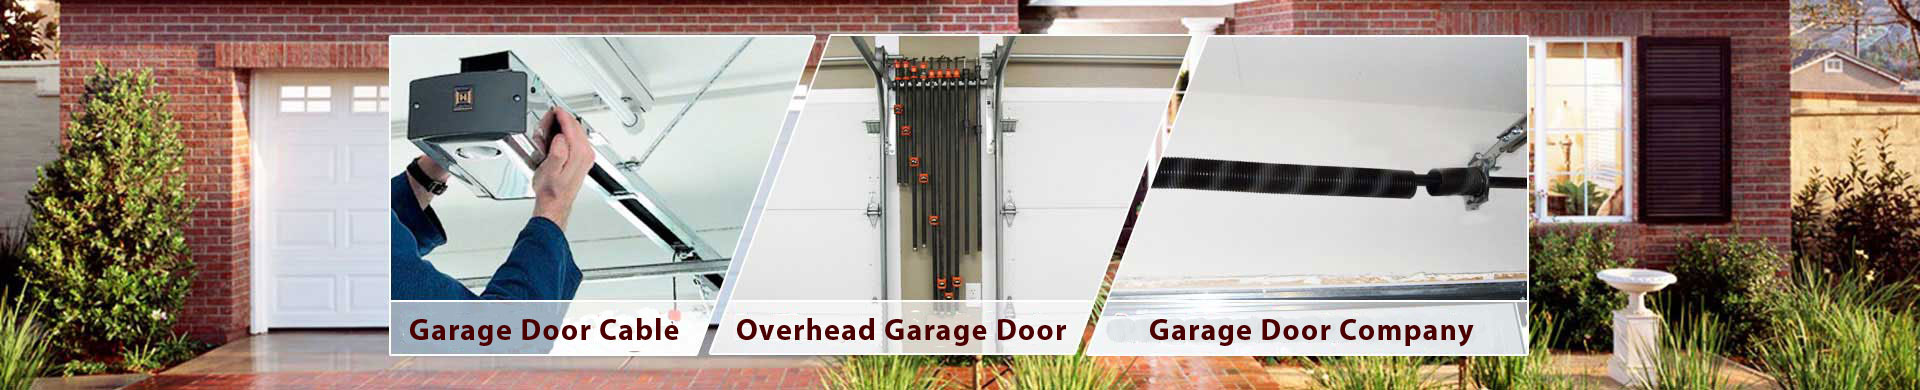 Toledou0027s Choice Garage Door Repair Co. PrevNext